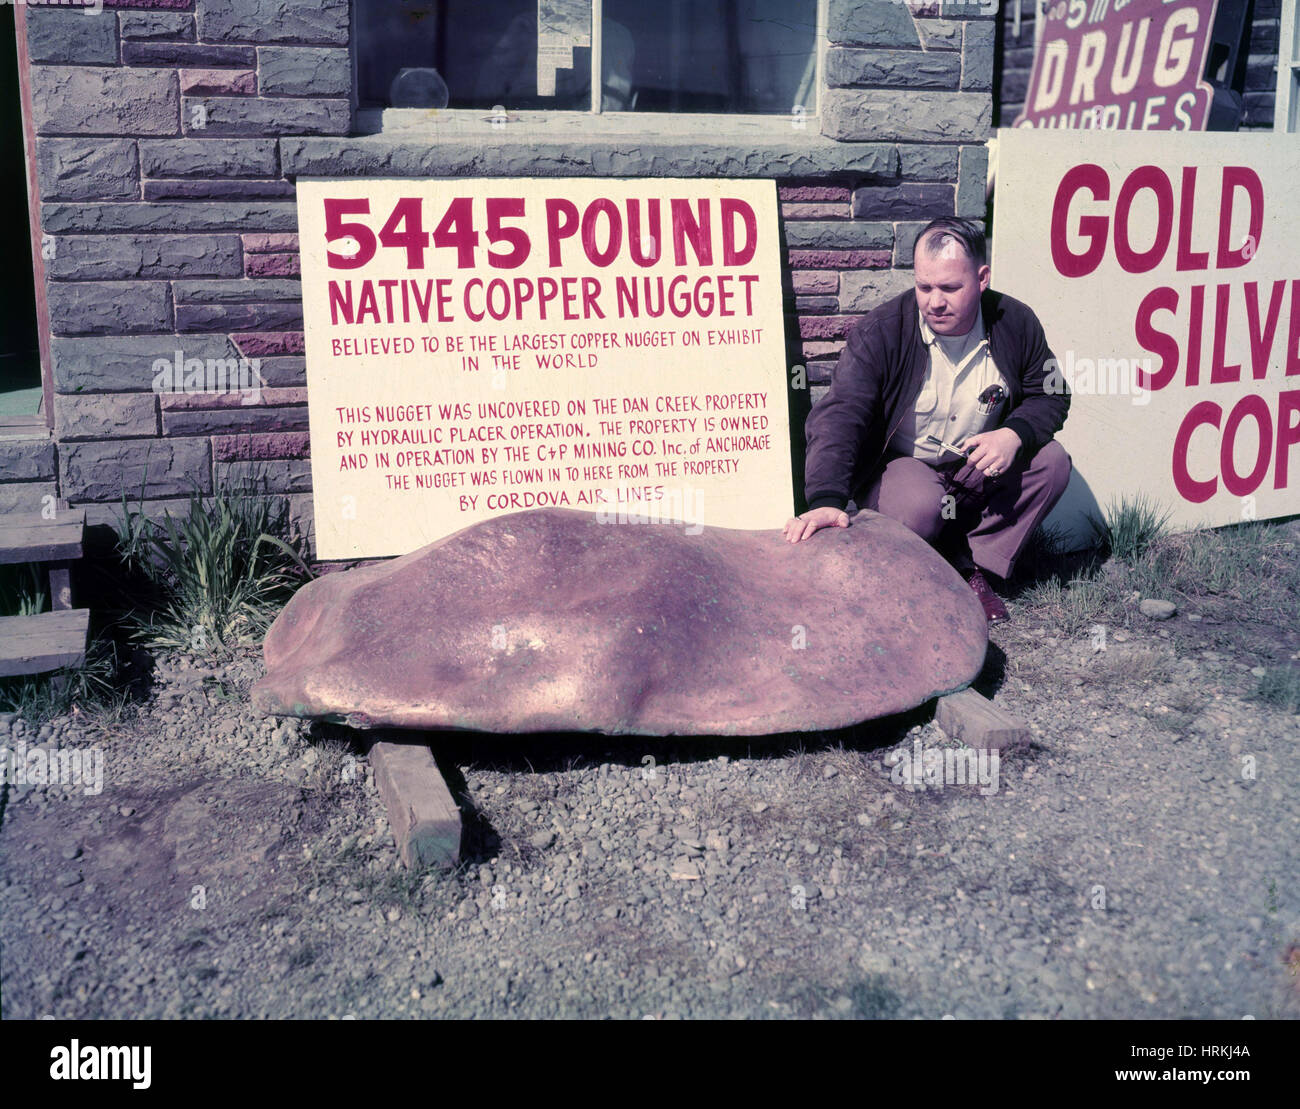 Giant Copper Nugget, Historical - Stock Image